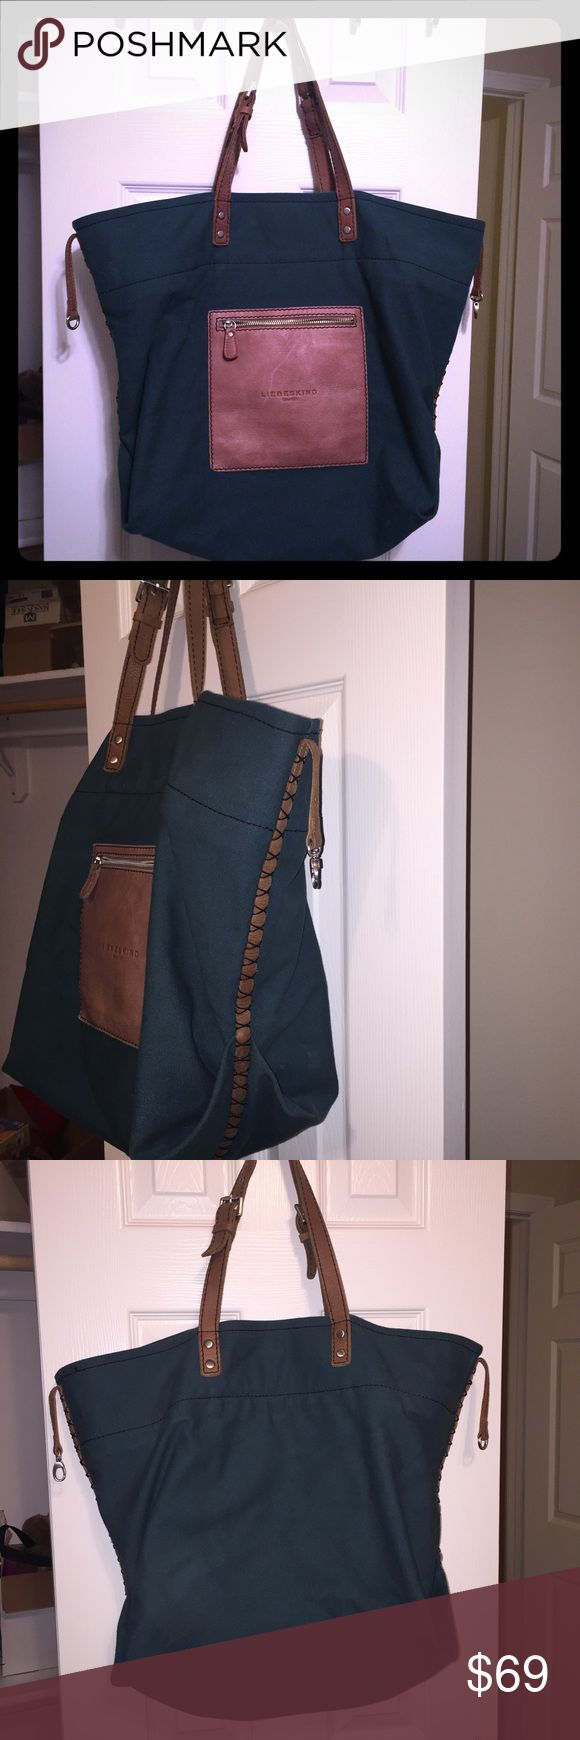 SALE! Liebeskind large dark green canvas tote This tote is perf ft for traveling! I've used it once to go to NYC. It has an outer zip small leather pocket, two inner zip pockets (one on each side) and a larger removable inner zip bag that clasps into place. It has braided leather detail on the outer edges, and a lobster claw clip to hold it shut. Approx 21.5w x 16h with a maximum of 10 in strap drop (can shorten) Liebeskind Bags Totes